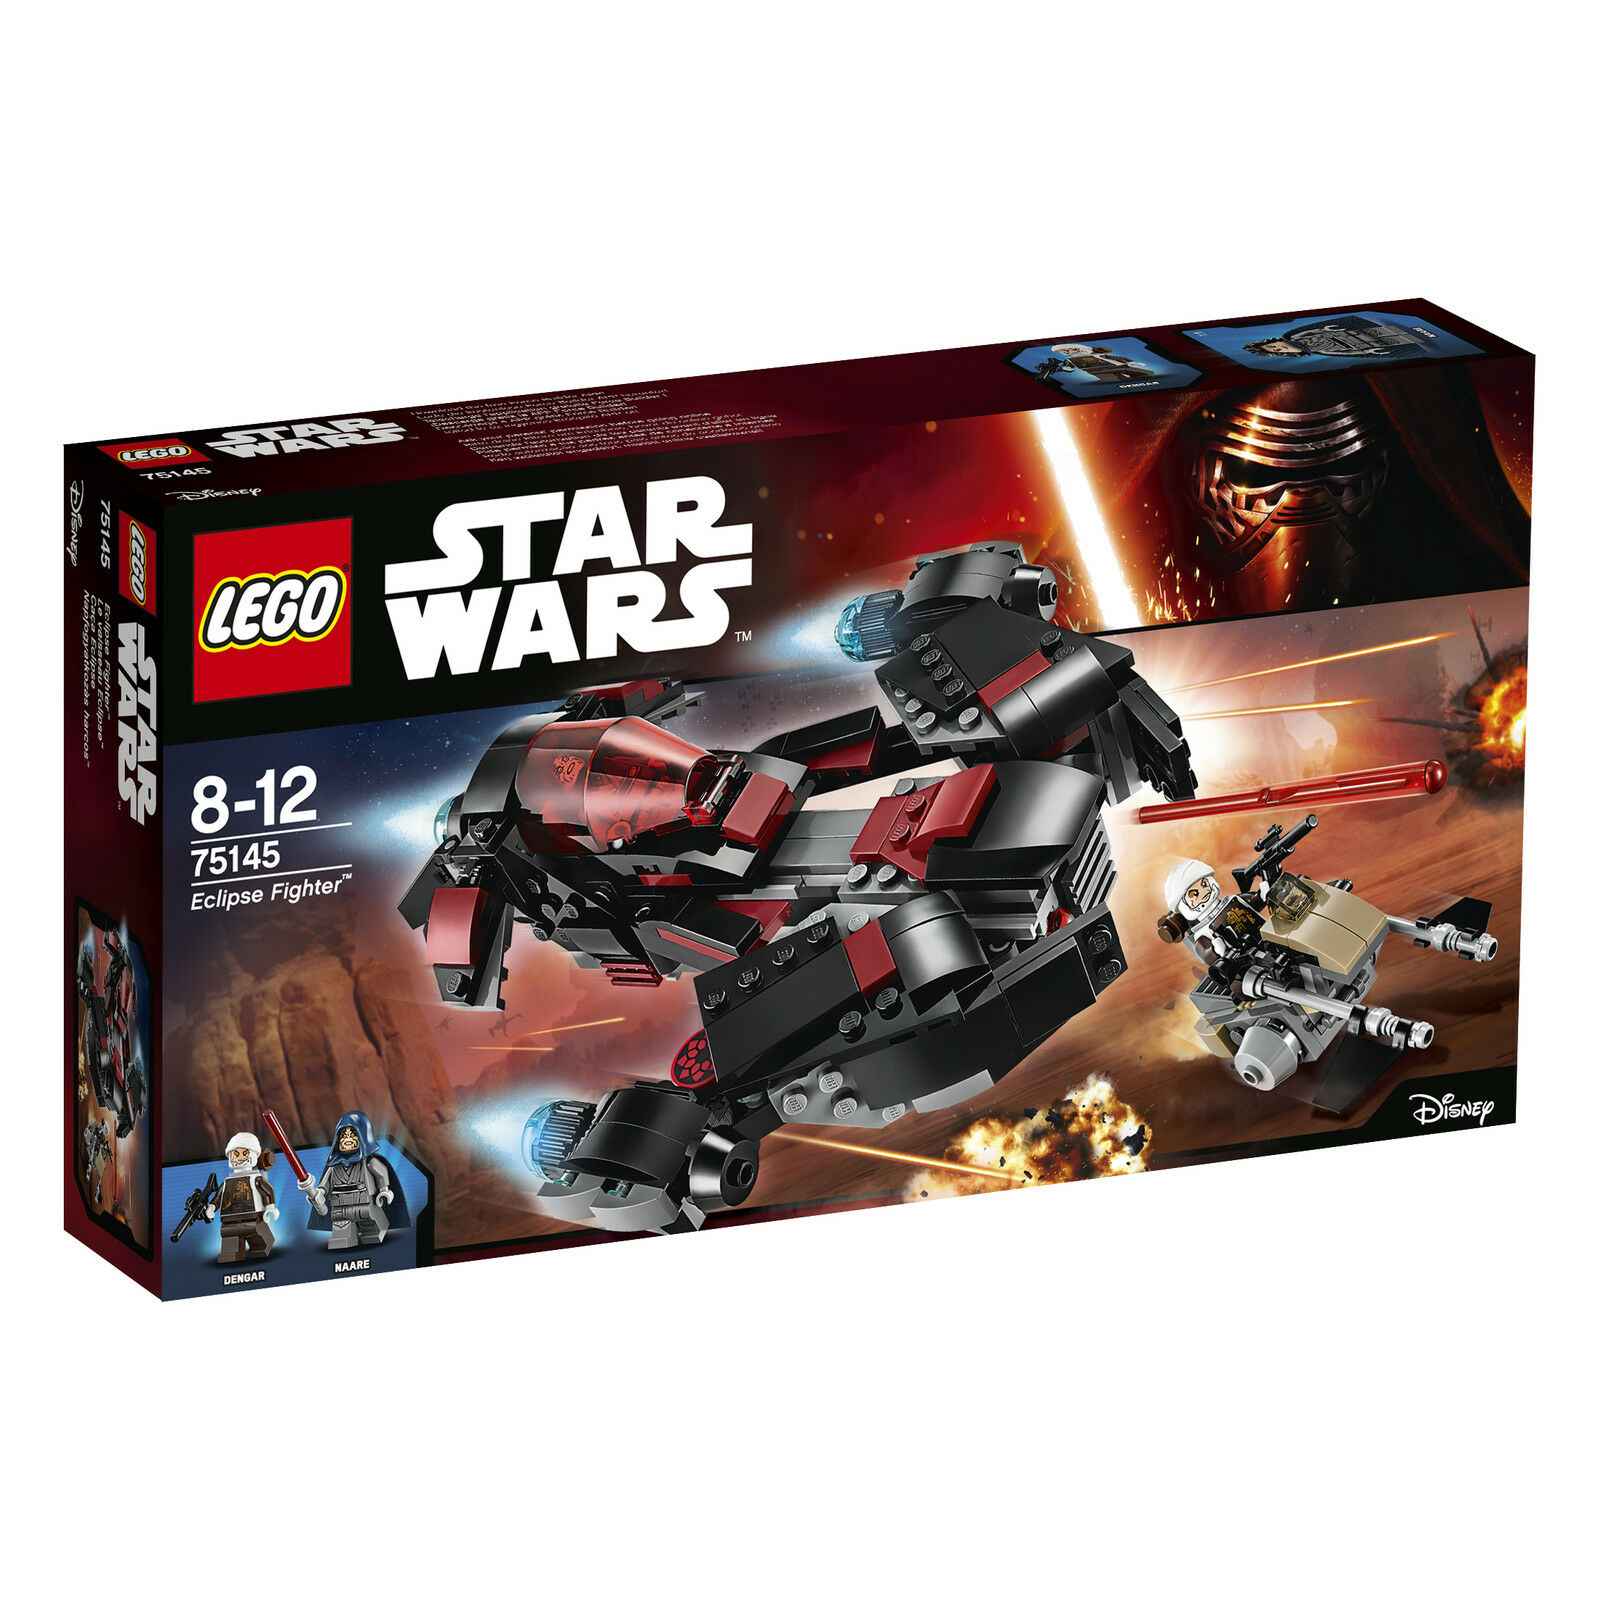 LEGO® Star Wars™ 75145 Eclipse Fighter™ NEU OVP NEW MISB NRFB